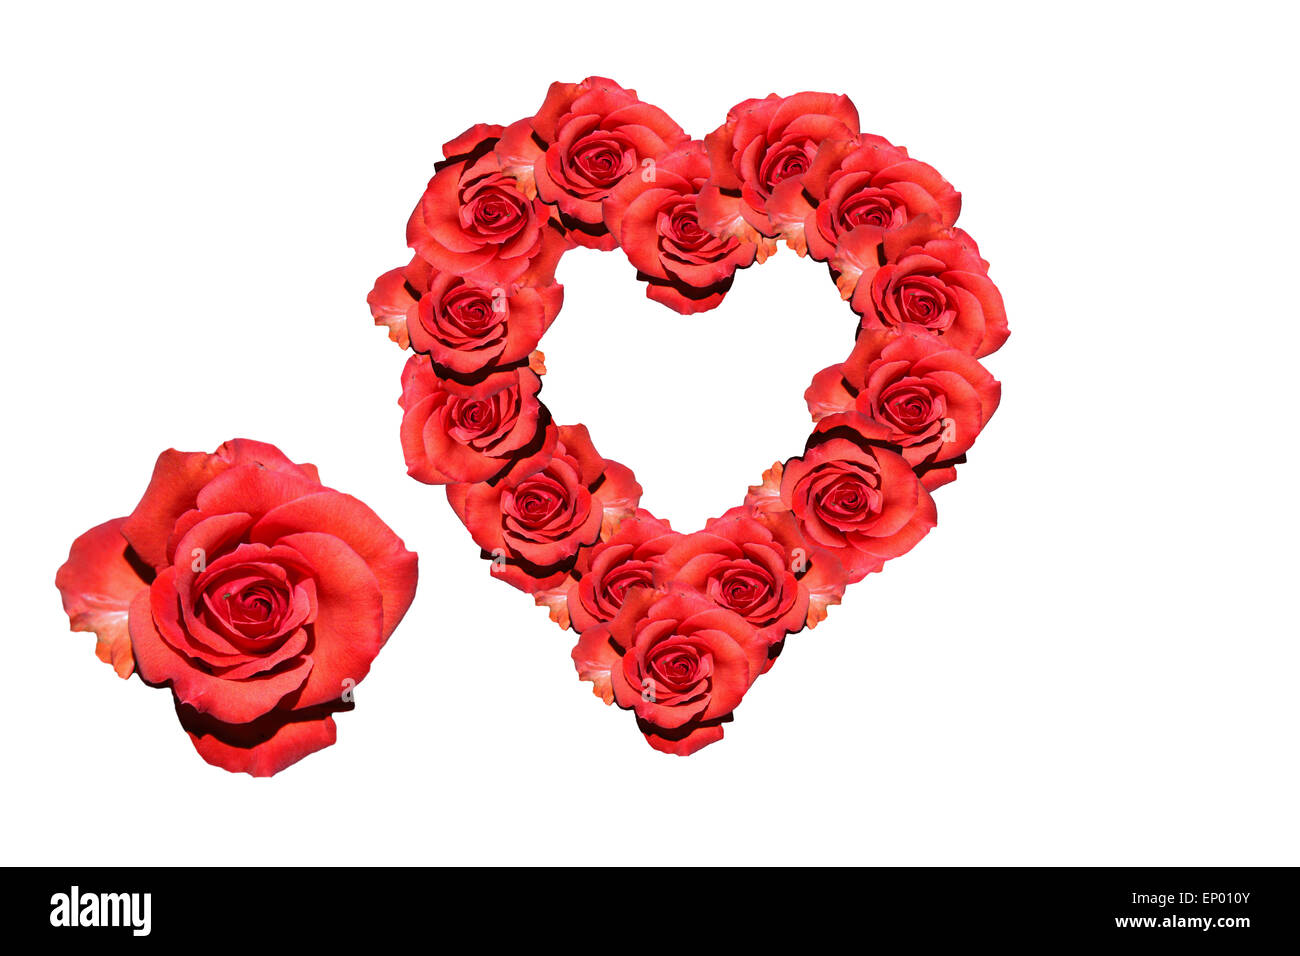 Herz: Rote Rosen   Symbolbild Liebe/ Valentinstag/ Heart: Red Rose    Symbolic Image For Love, Affection And Valentines Day.